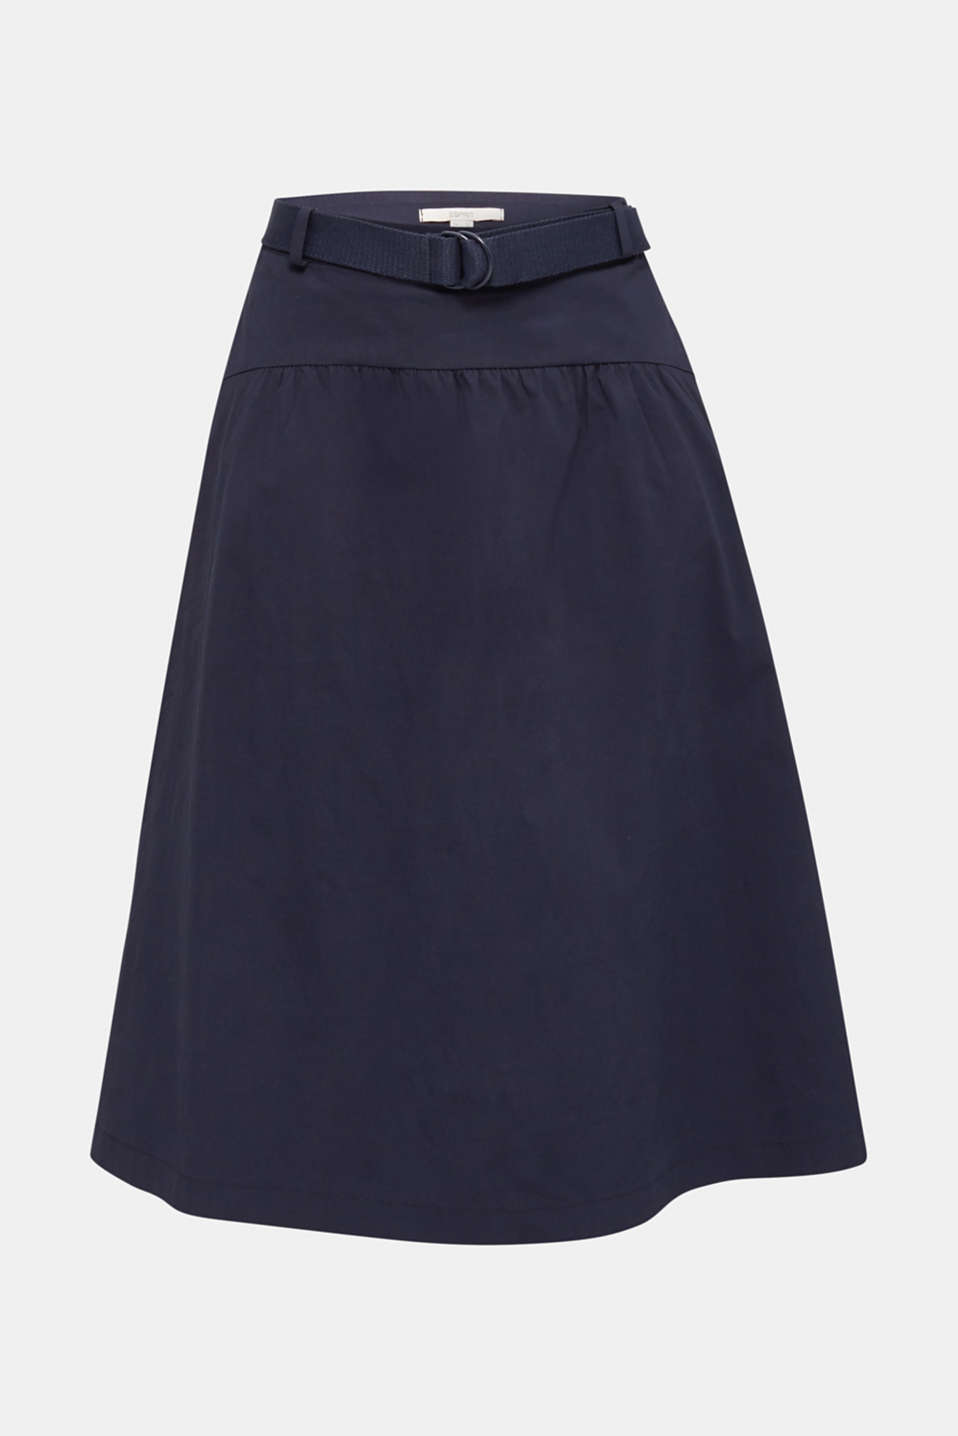 Flared poplin skirt with a belt, NAVY, detail image number 6